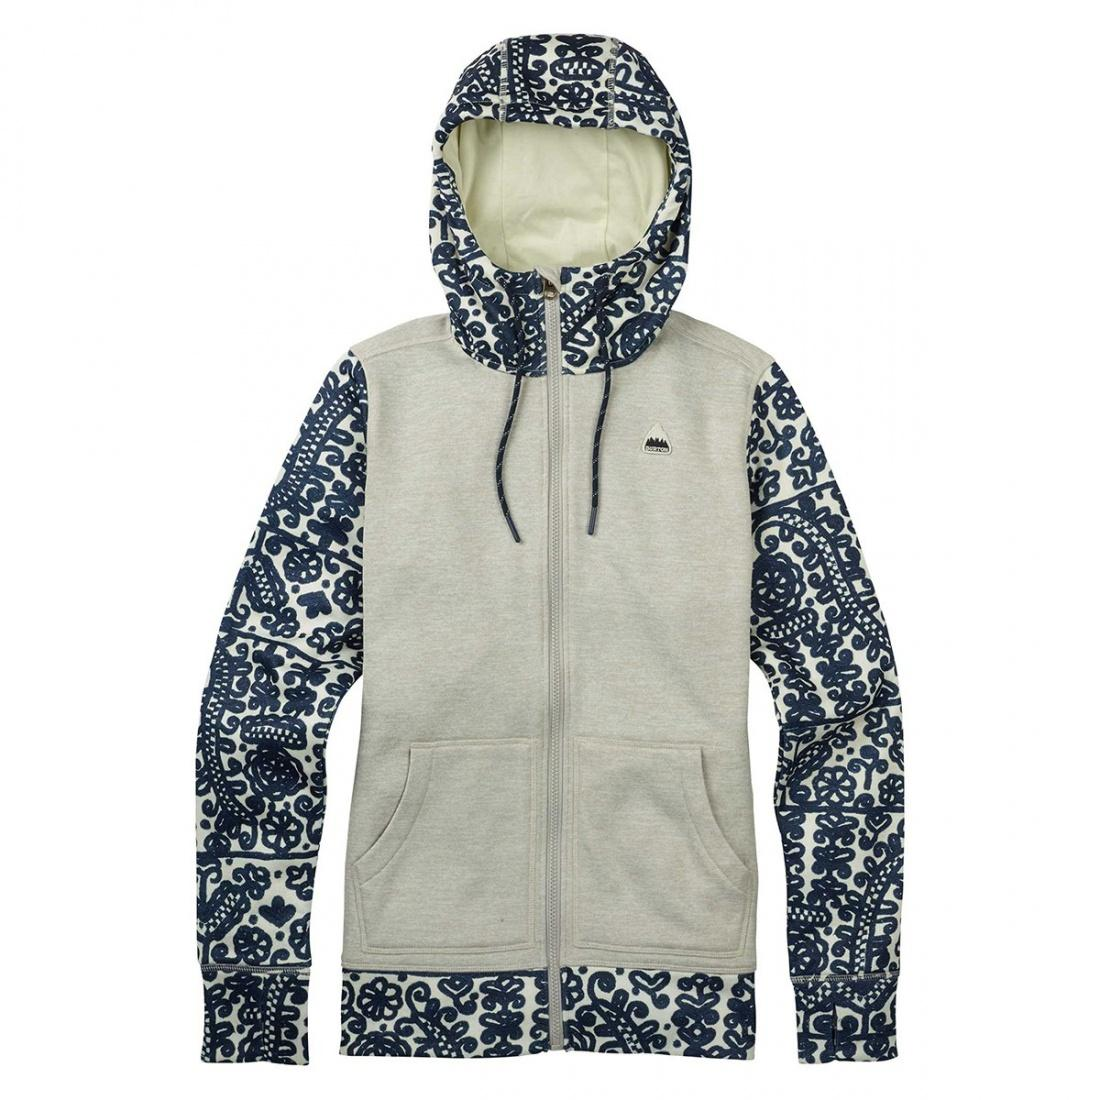 Burton Толстовка Burton Quartz Full-Zip Dove Heather, , , FW18 XS сумка дорожная burton wheelie dbl deck hawaiian heather